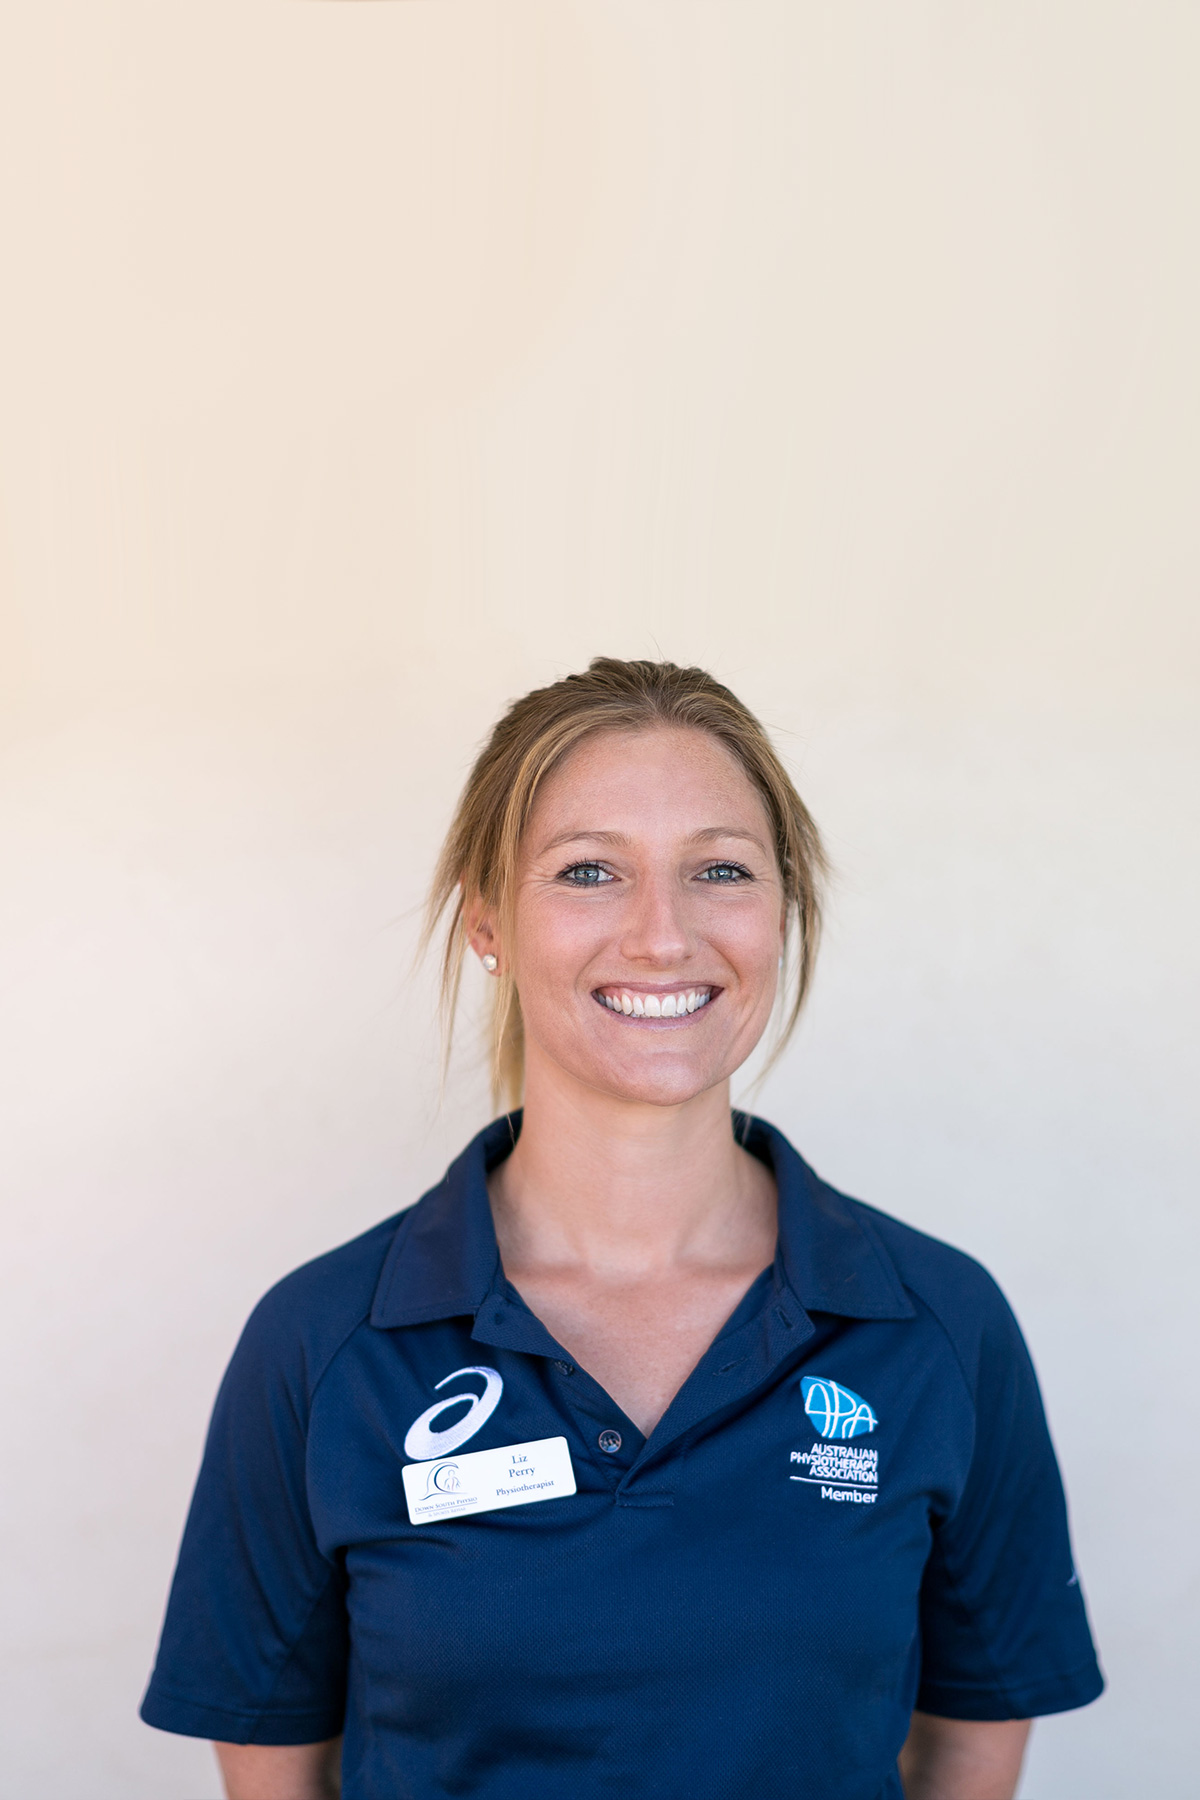 Dunsborough physiotherapist Down South Physiotherapy Dunsborough. Experienced Sports Physiotherapists also specialising in surfing injuries.